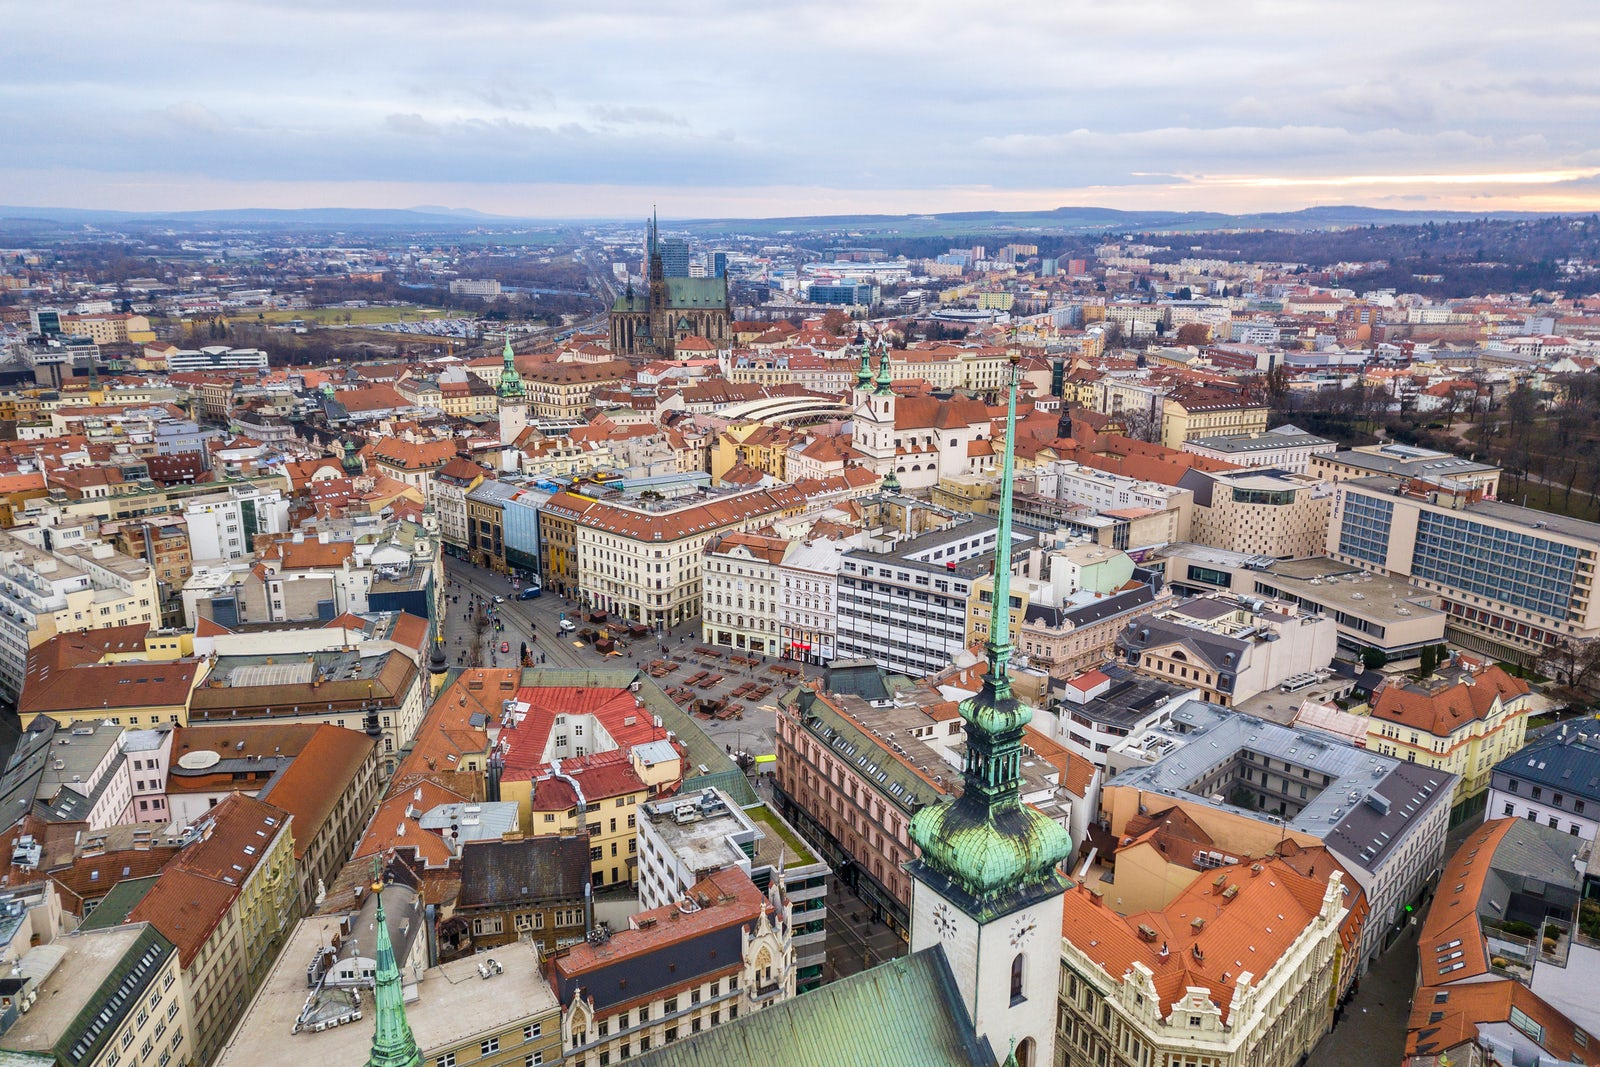 !i18n:es:data.cities:brno.picture.caption